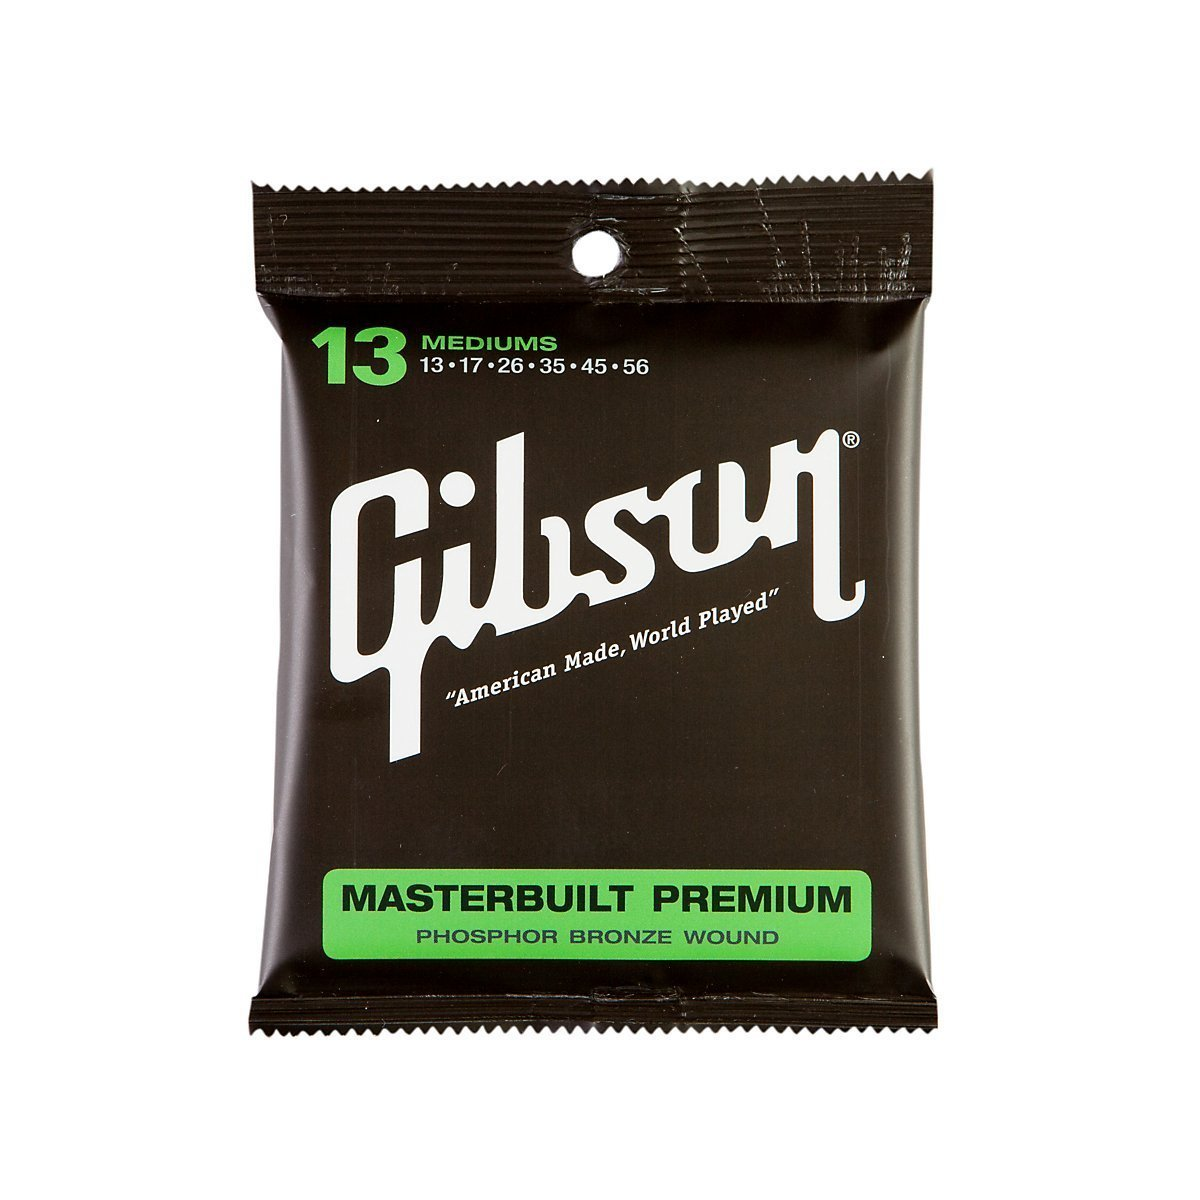 Gibson SAG-MB13 Masterbuilt Premium Phosphor Bronze Acoustic Guitar Strings, Medium, 013-056